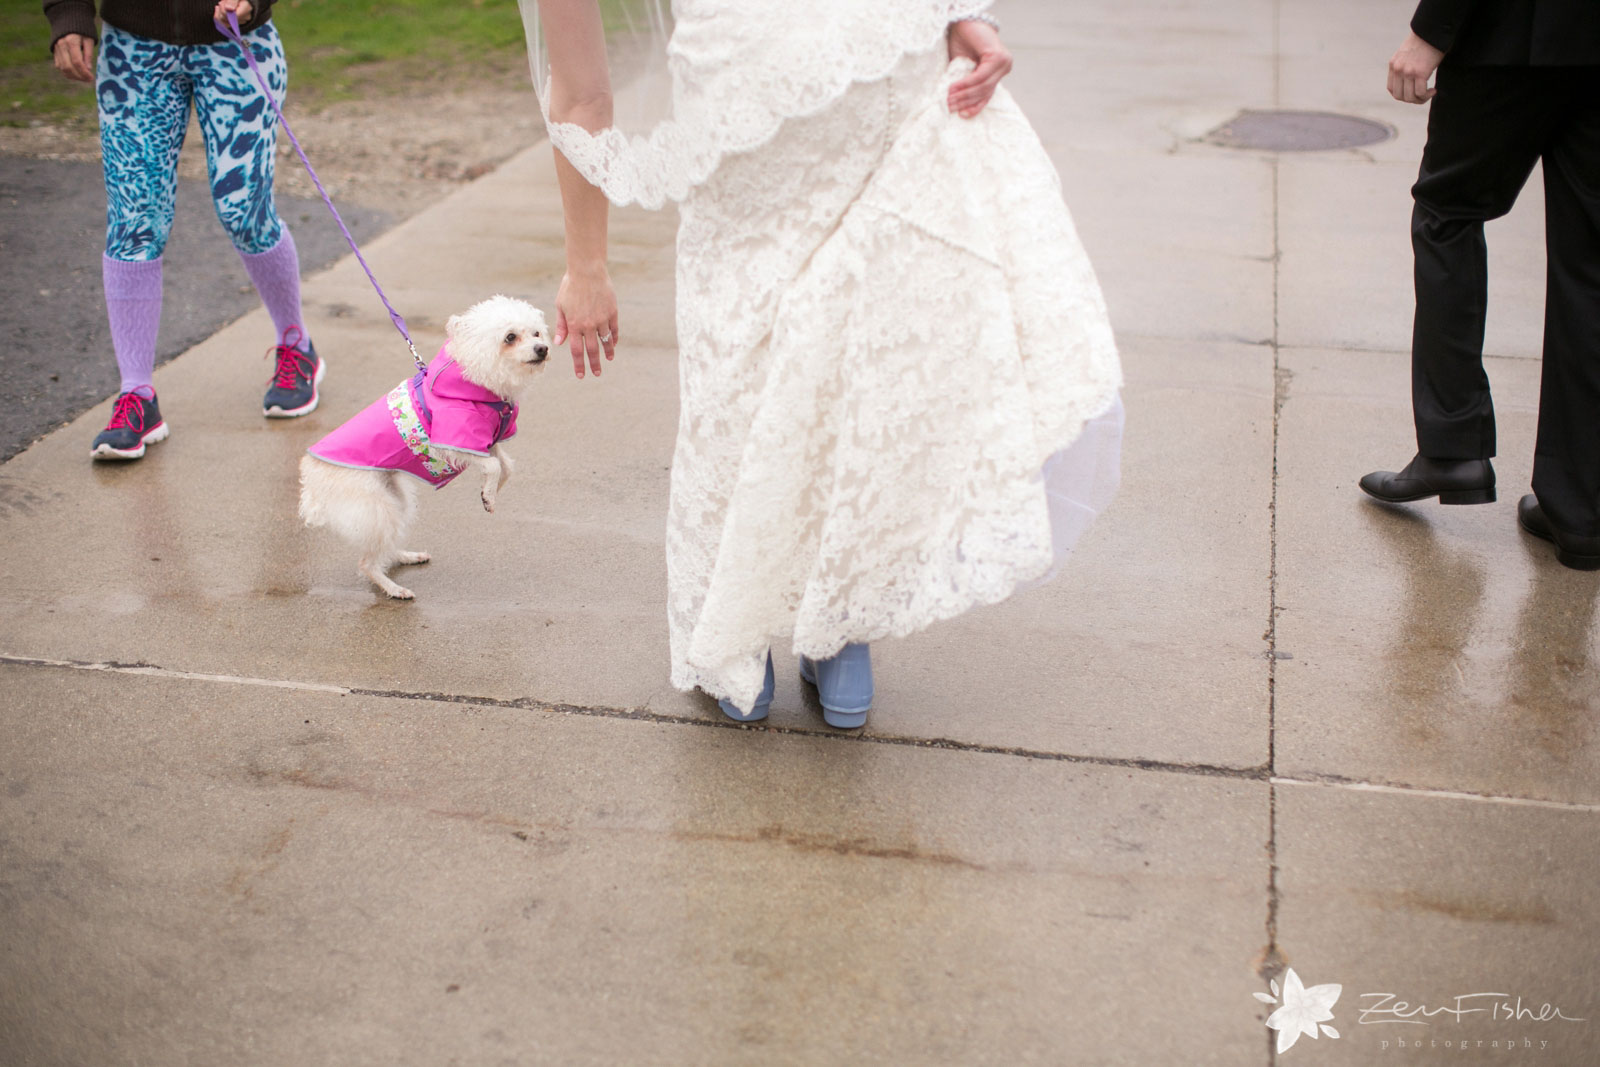 Silly shot of bride from behind bending over to play with a passing dog on the sidewalk.